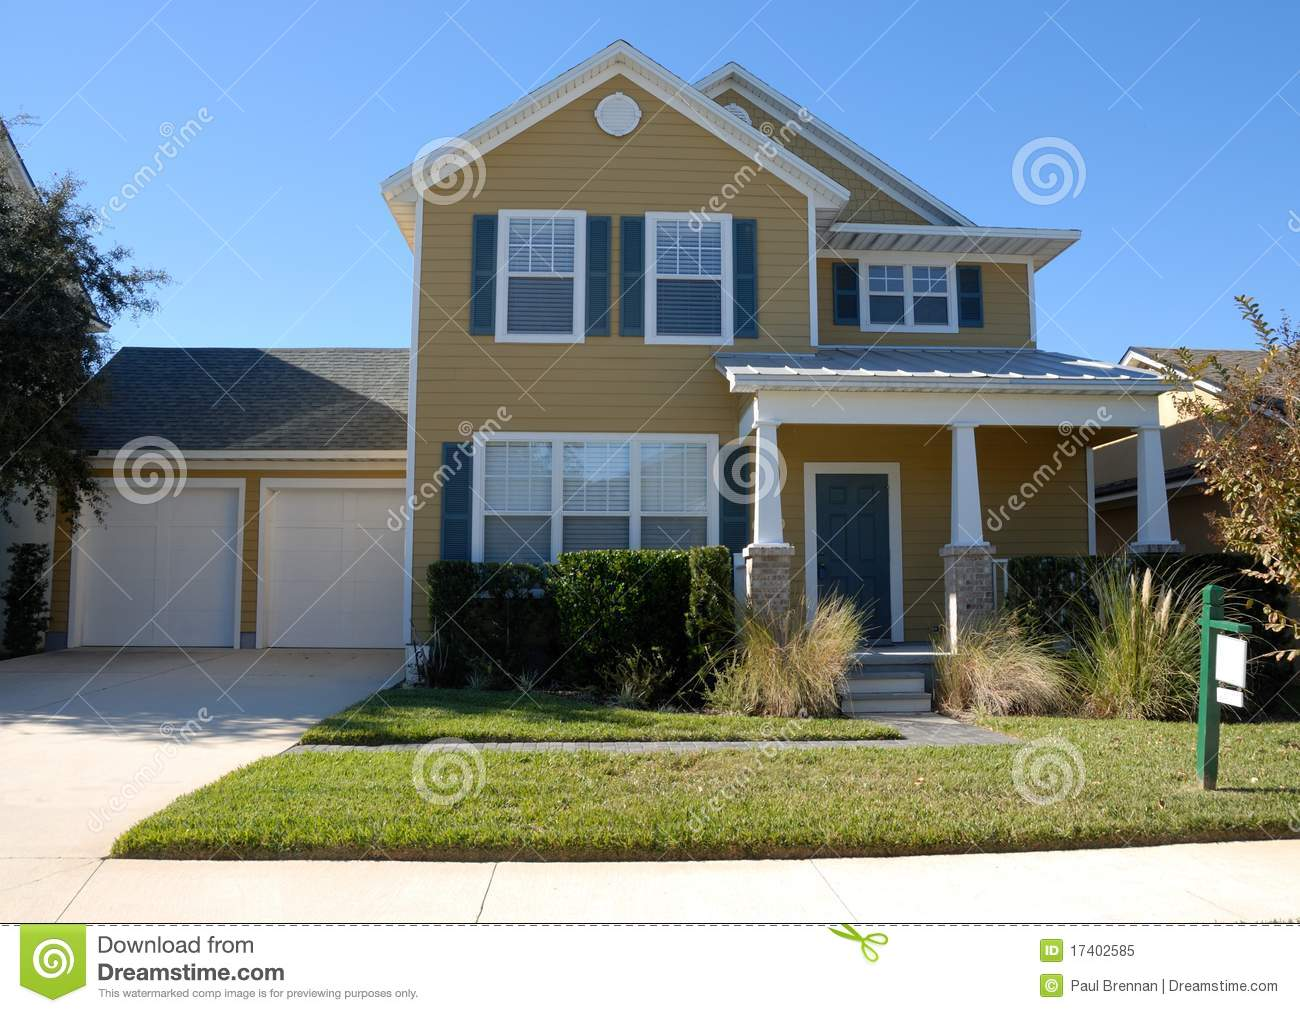 Modern suburban home for sale stock image image 17402585 for Modern photography for sale